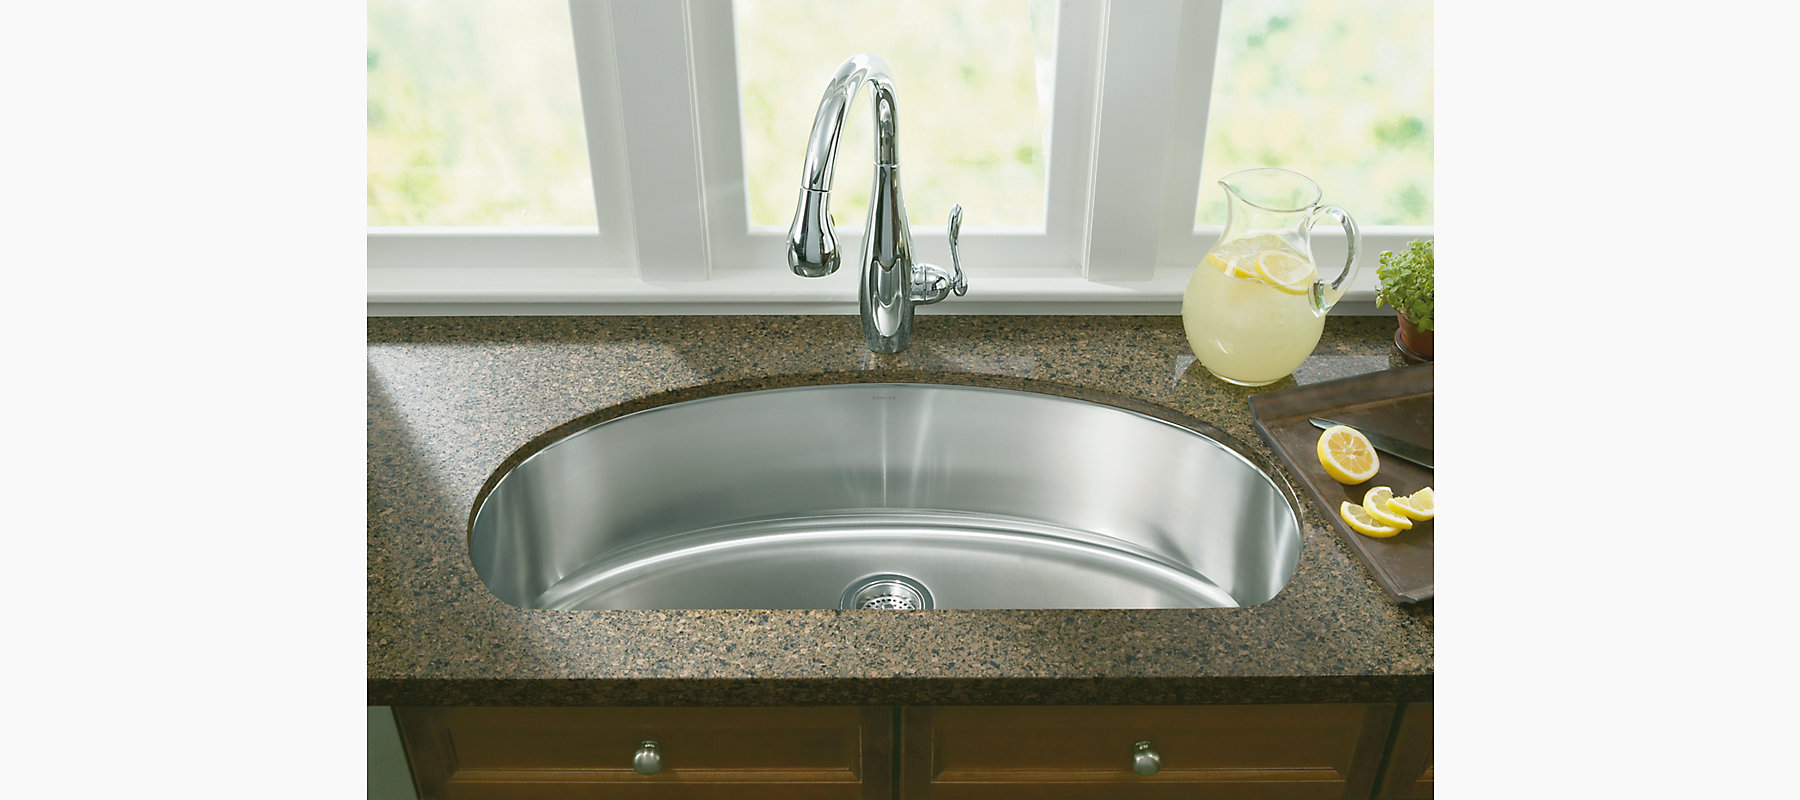 K 3185 Undertone Extra Large D Bowl Kitchen Sink Kohler